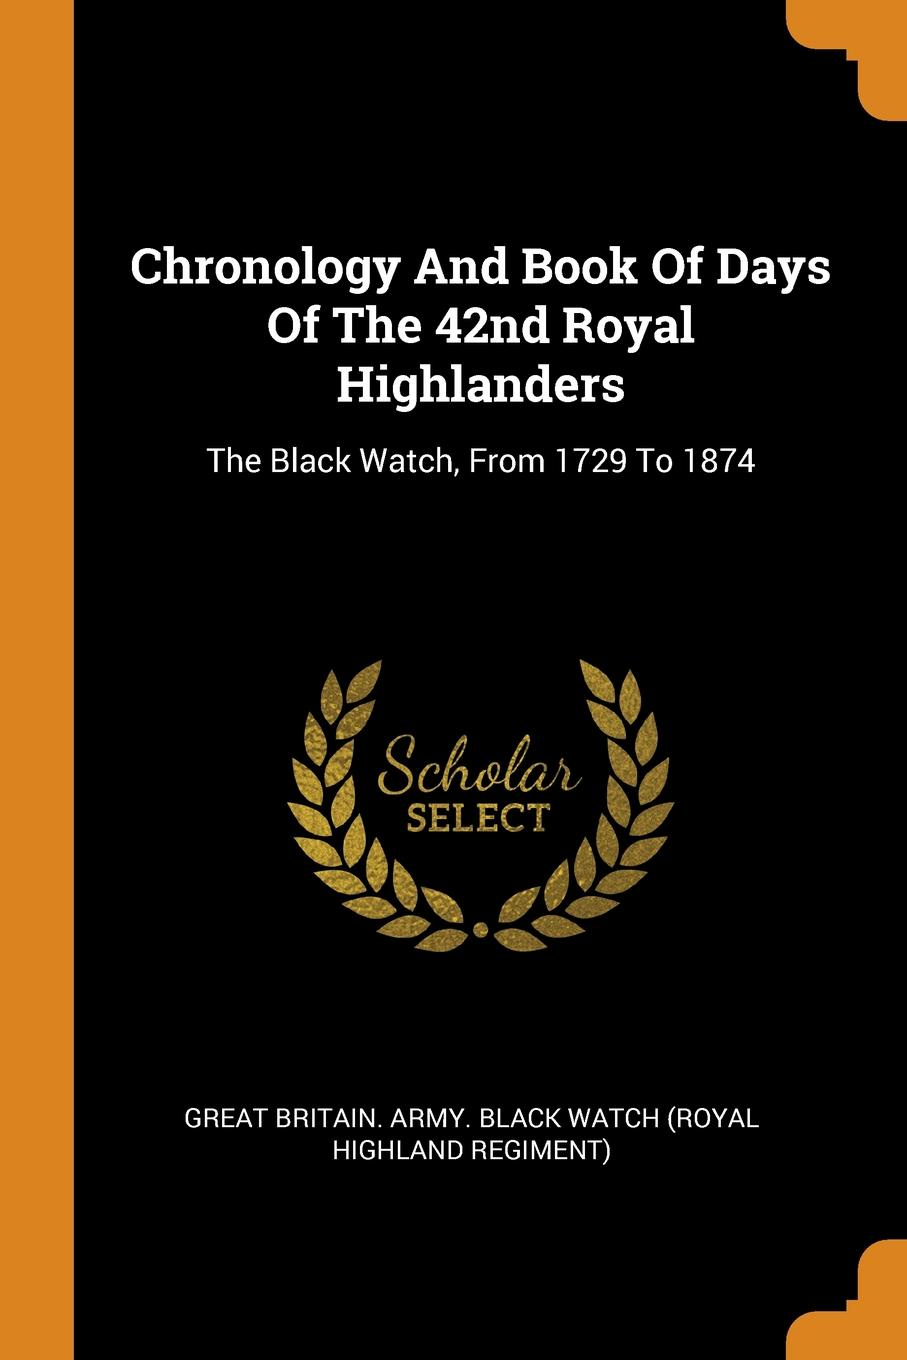 Chronology And Book Of Days Of The 42nd Royal Highlanders. The Black Watch, From 1729 To 1874 john percy groves history of the 42nd royal highlanders the black watch now the first battalion the black watch royal highlanders 1729 1893 illustrated by harry payne